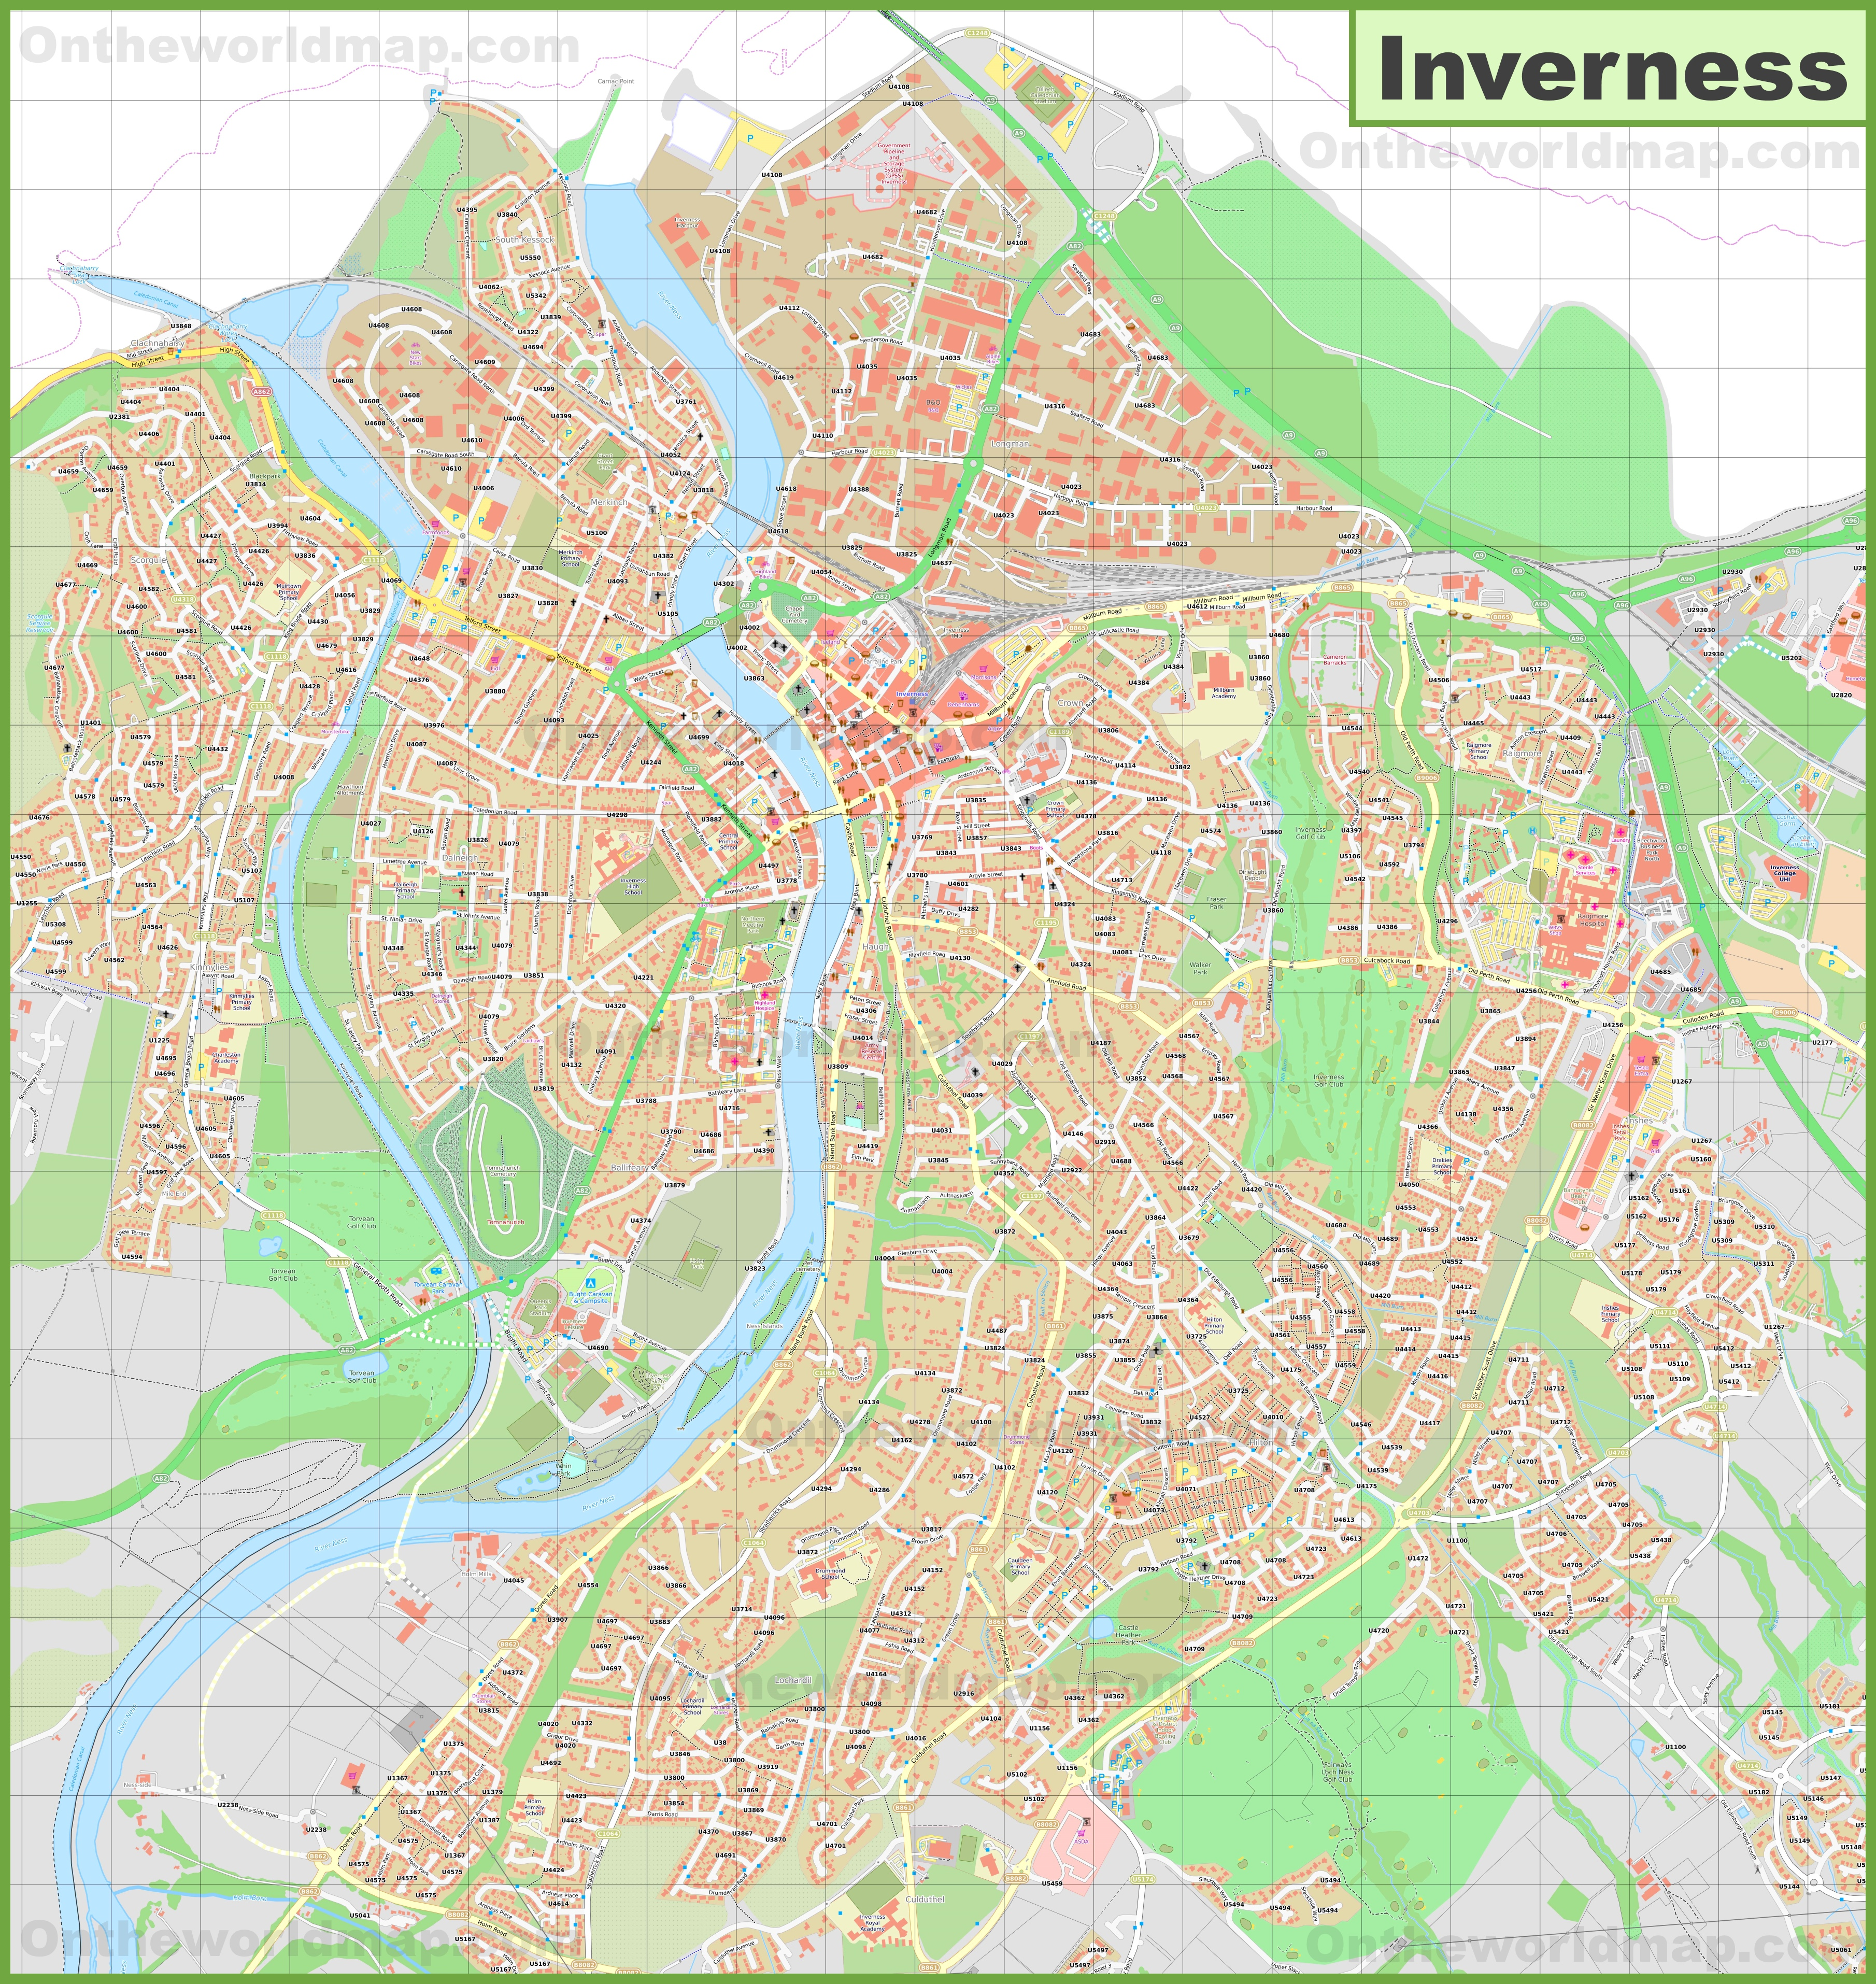 Detailed map of Inverness